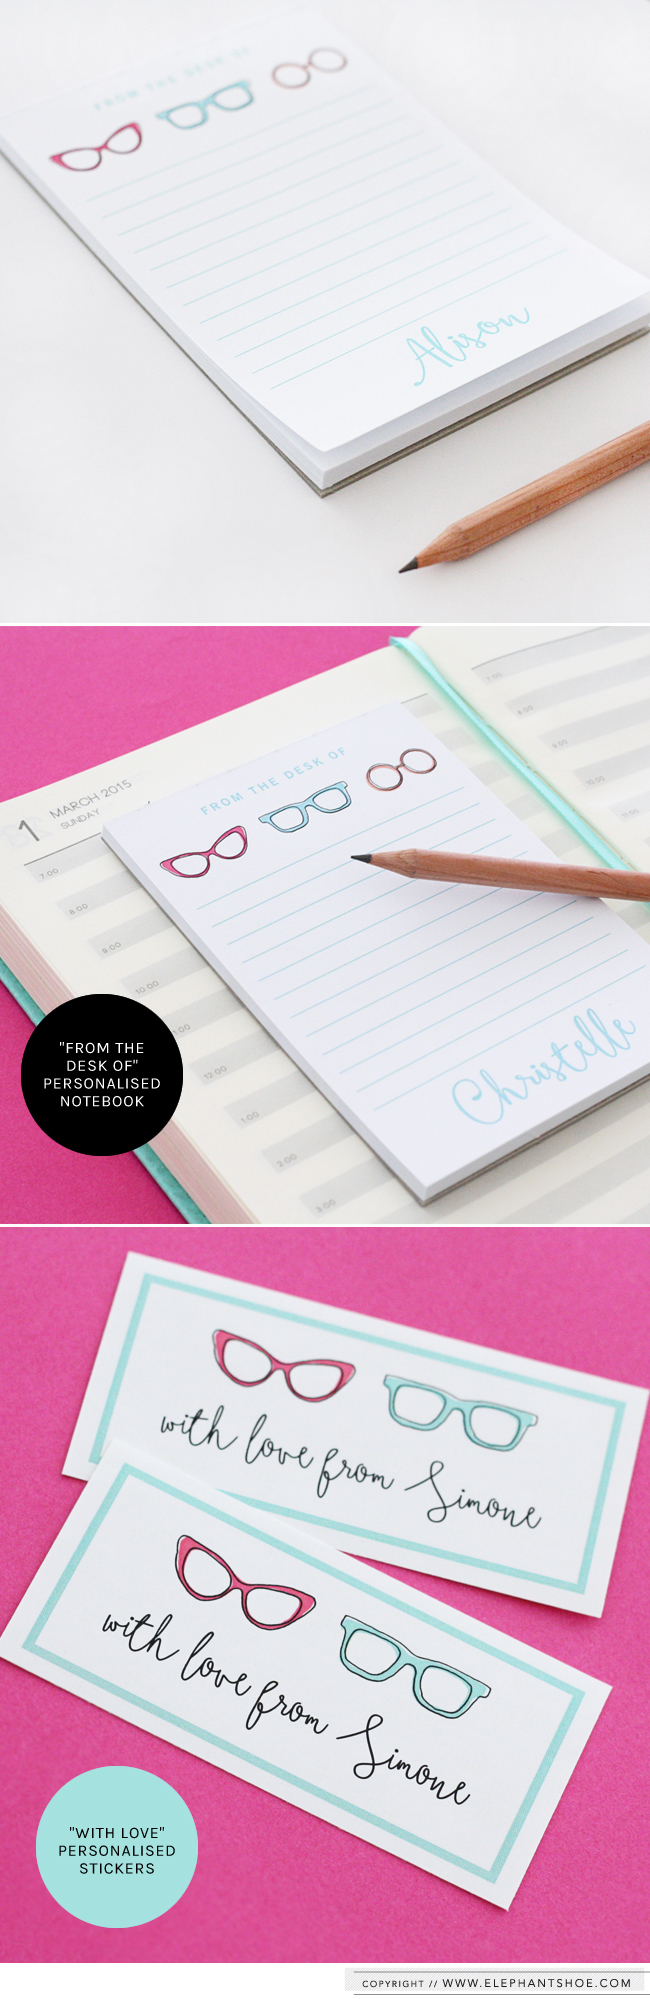 Personalized Elephantshoe Notebook